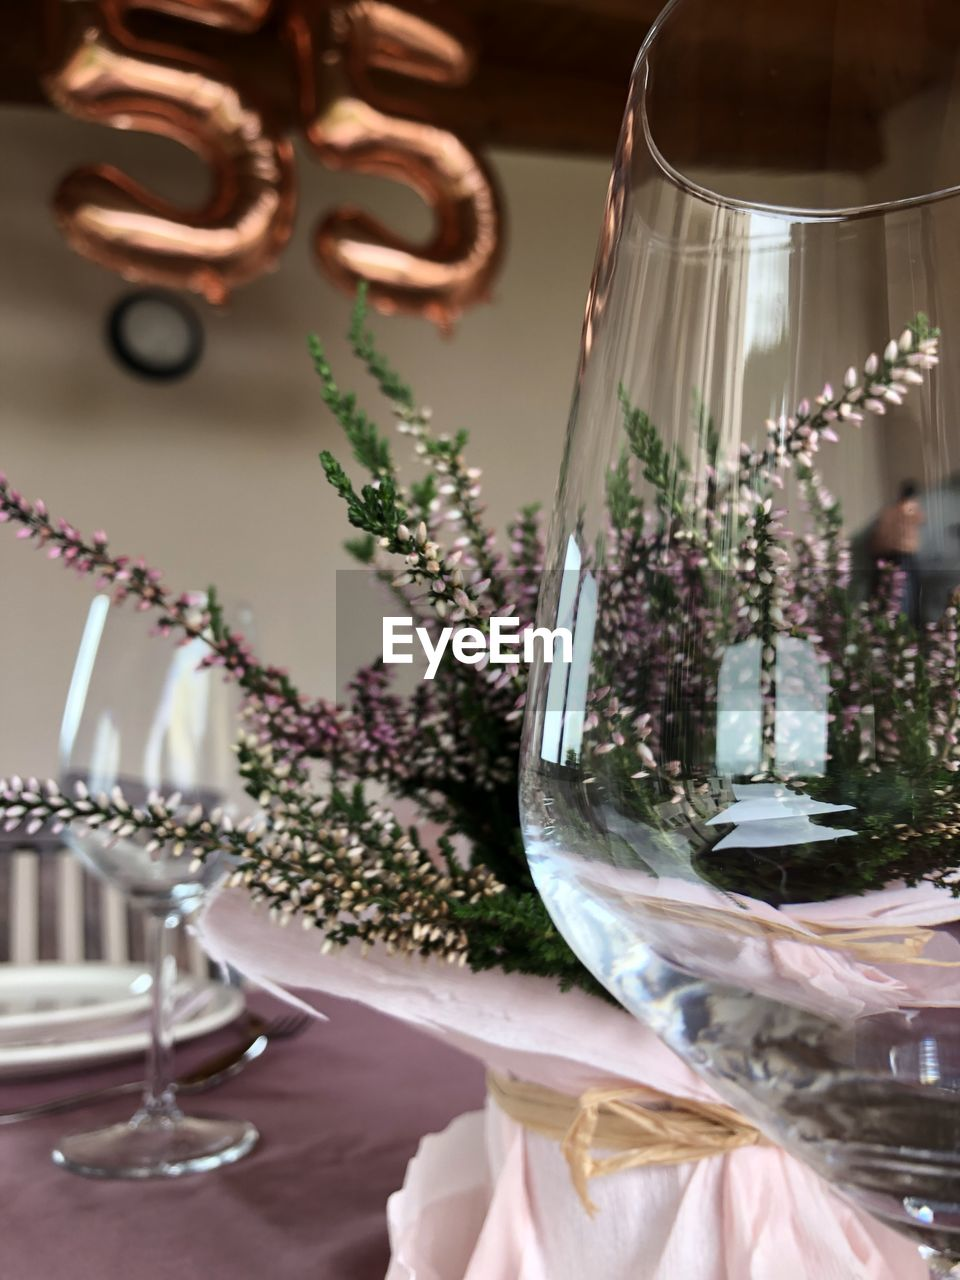 indoors, glass - material, glass, table, transparent, still life, no people, wineglass, focus on foreground, selective focus, close-up, household equipment, celebration, decoration, choice, food and drink, container, drinking glass, variation, large group of objects, luxury, silver colored, setting